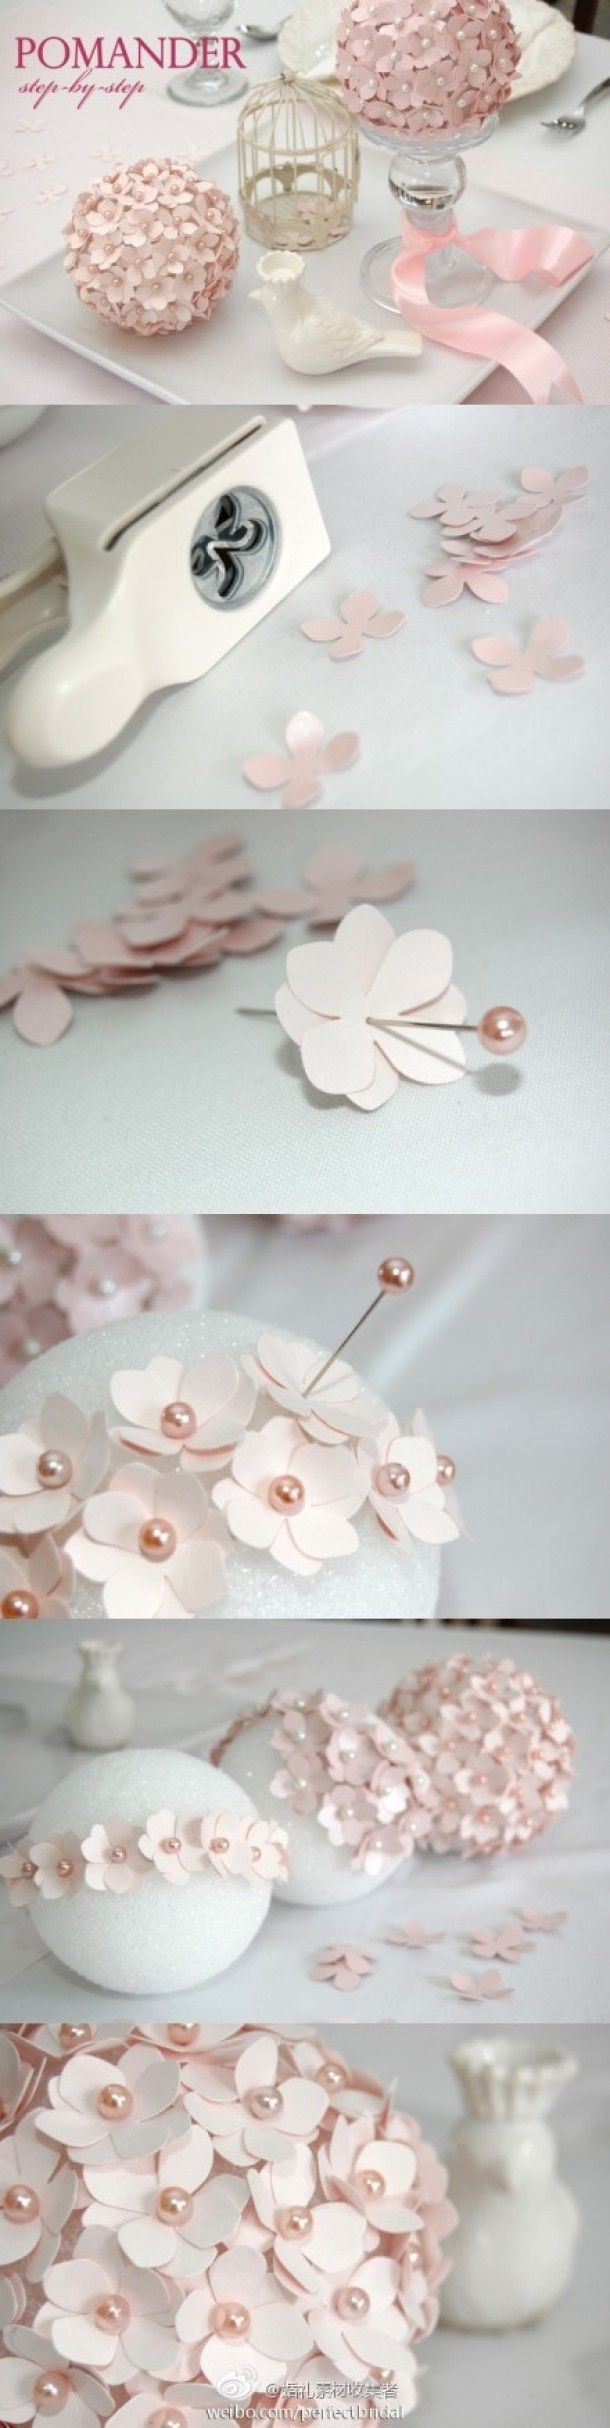 DIY paper flower centrepieces. These would be a sweet addition to any table.